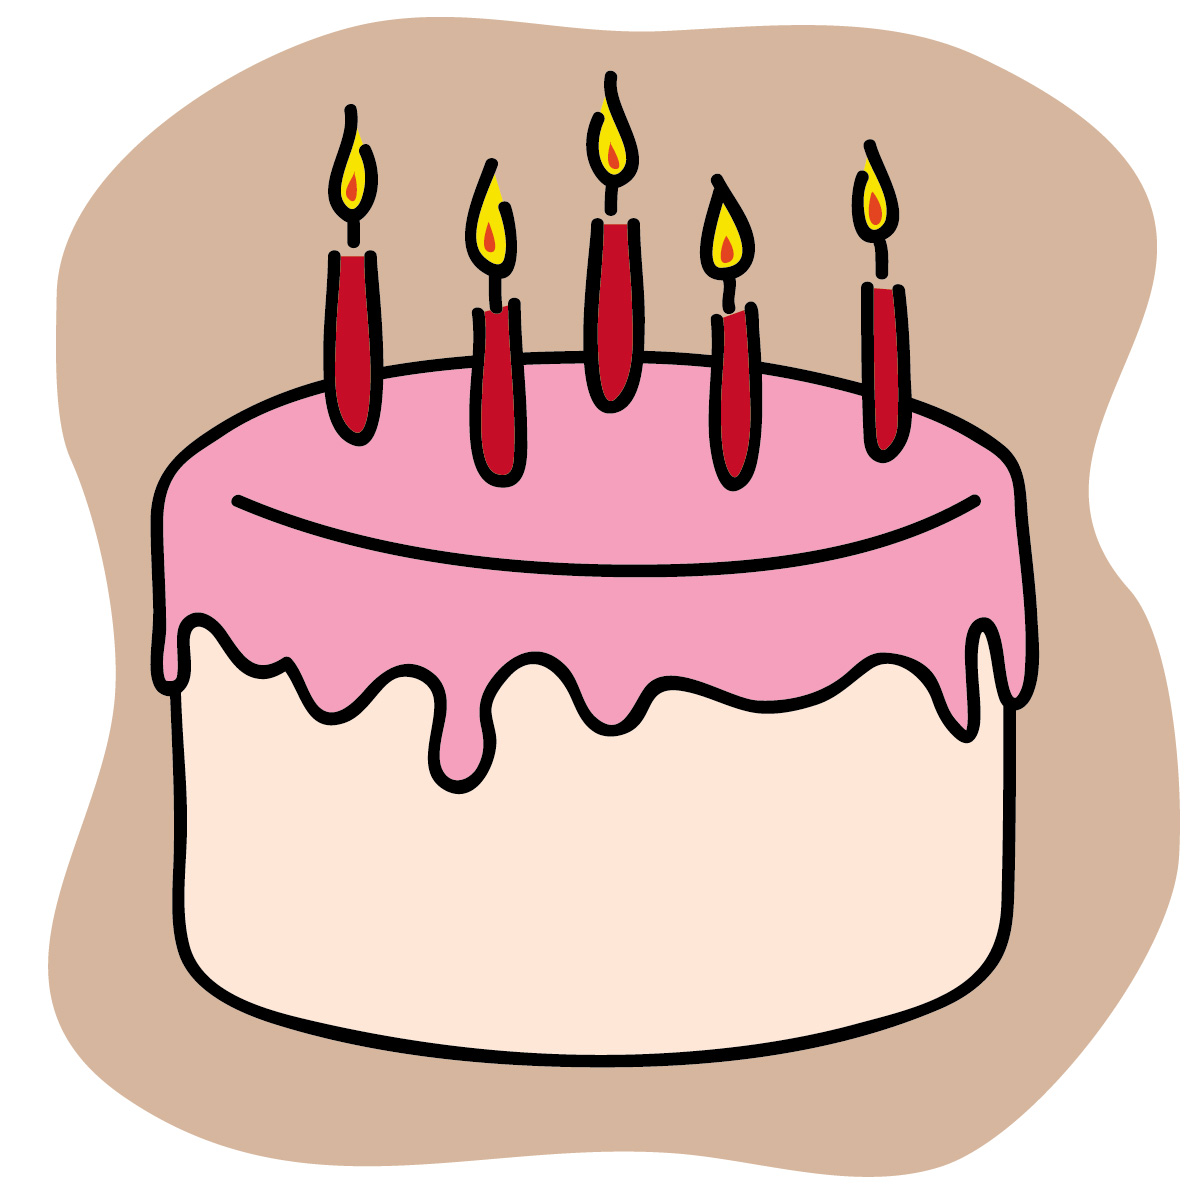 Free images of a. Clipart cake simple